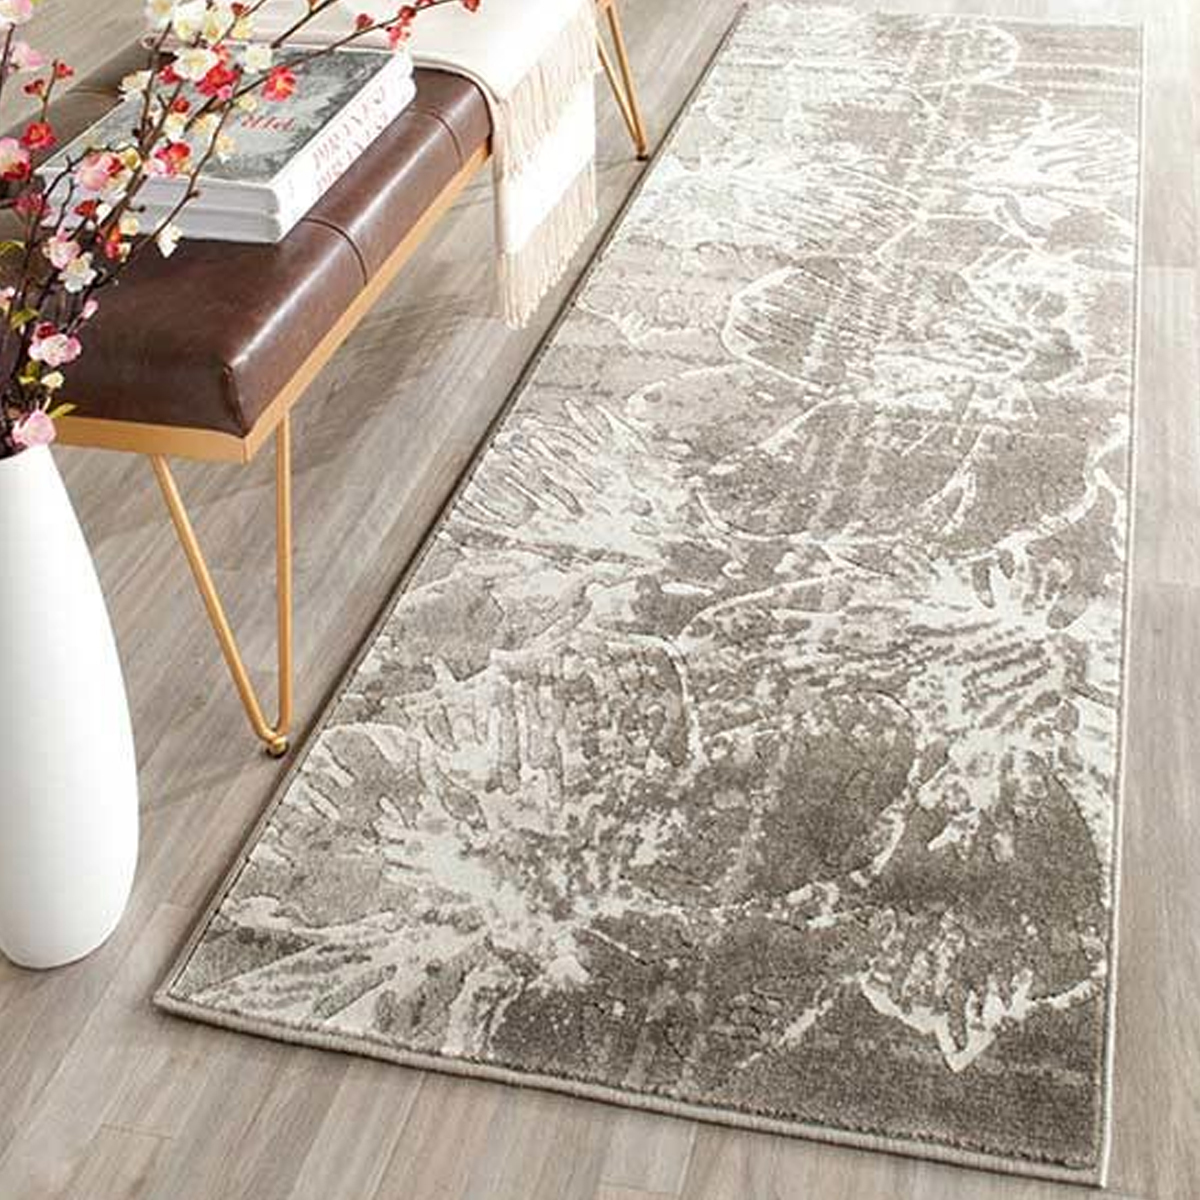 Trendy grey-and-white floral rug that is super soft and durable. photo